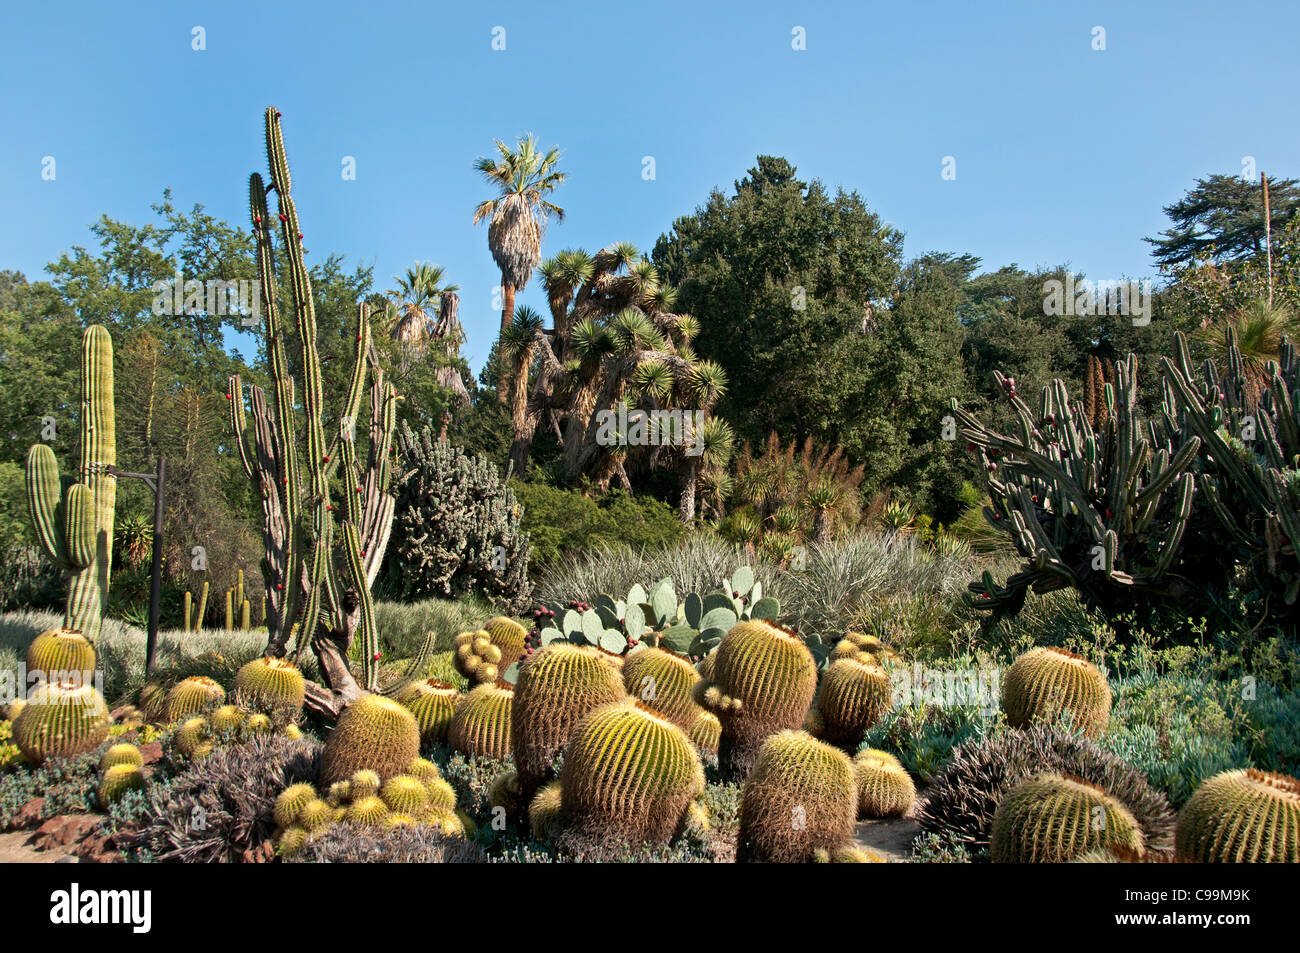 The huntington library art collections botanical gardens - Huntington beach botanical garden ...